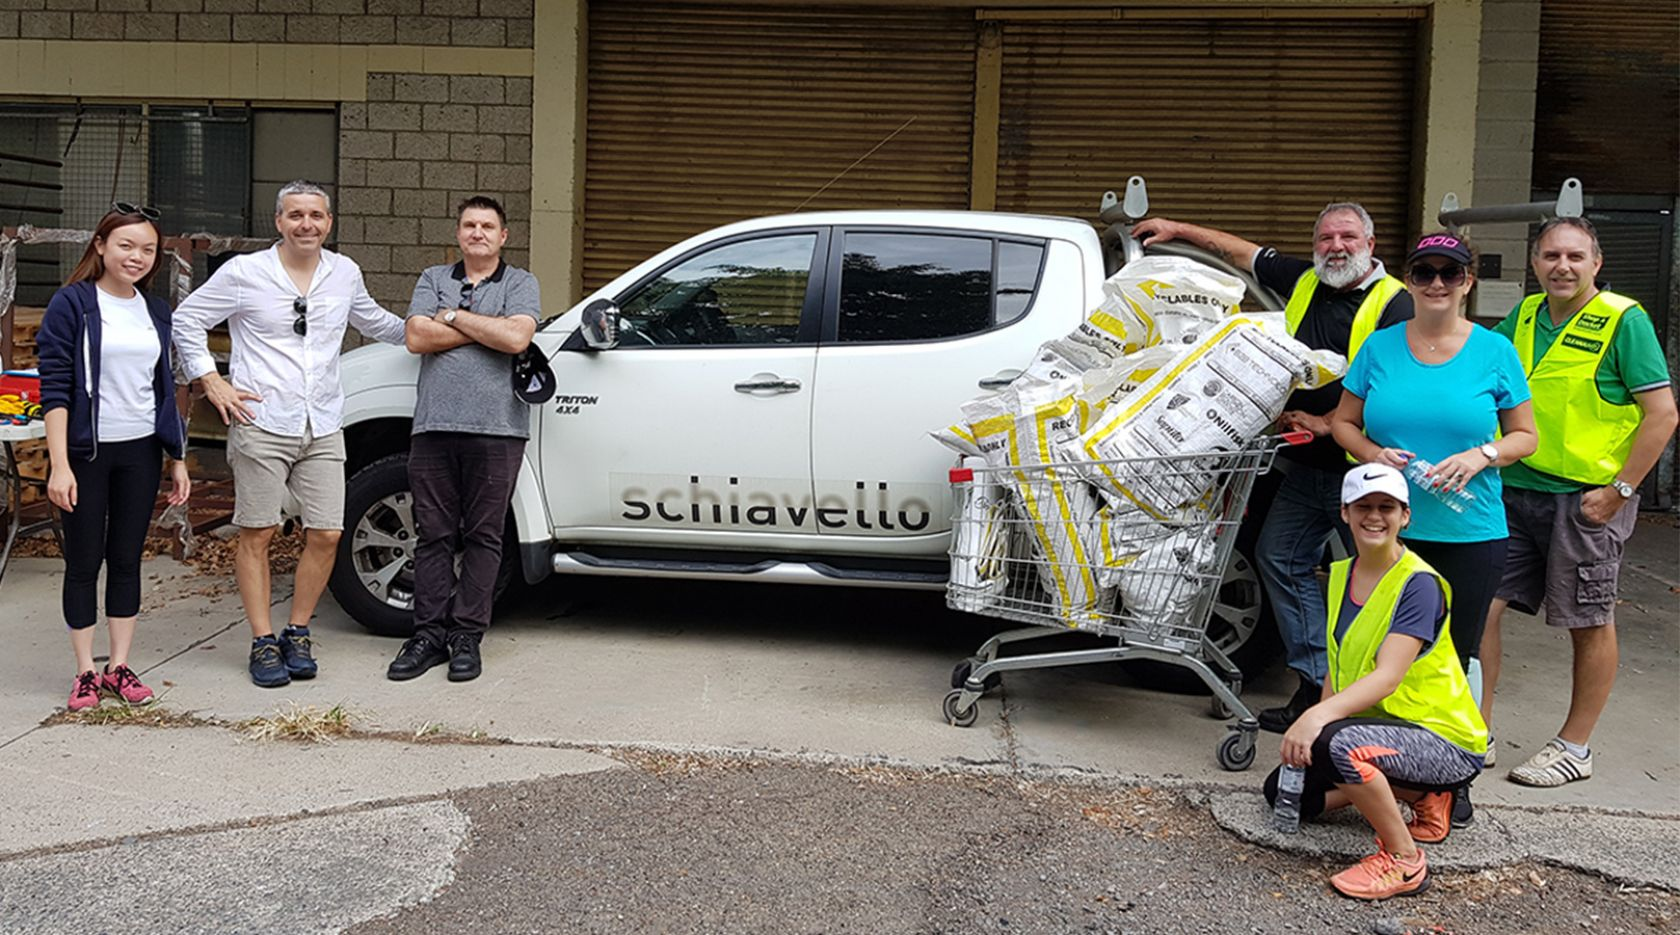 schiavello queensland employees stand in front of white company vehicle for clean up australia day